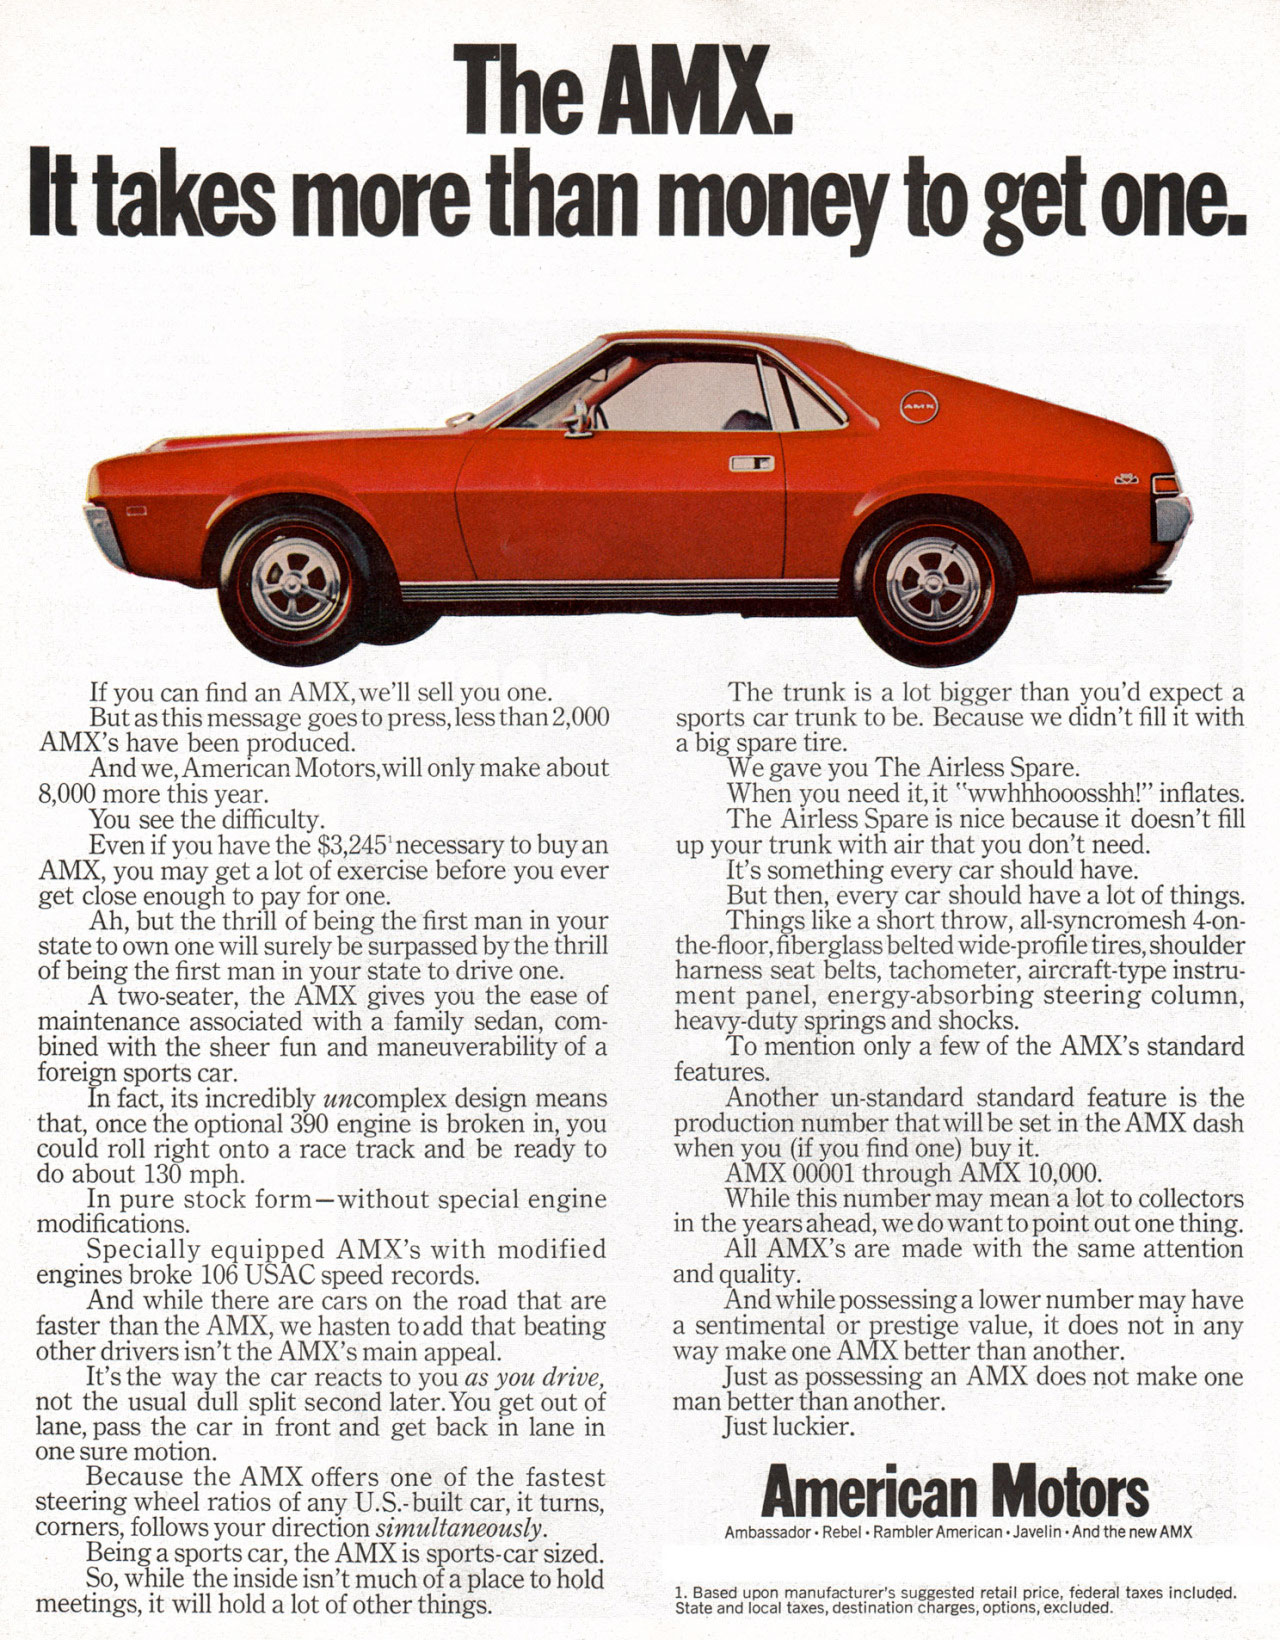 The American Motors AMX. It takes more than money to get one. If you can find an AMX, we'll sell you one. But as this message goes to press, less than 2,000 AMX's have been produced. And we, Amencan Motors,will only make about 8,000 more this year. You see the difficulty. Even if you have the $3,245' necessary to buy an AMX, you may get a lot of exercise before you ever get close enough to pay for one. Ah, but the thrill of being the first man in your state to own one will surely be surpassed by the thrill of being the first man in your state to drive one. A two-seater, the AMX gives you the ease of maintenance associated with a family sedan, com-bined with the sheer fun and maneuverability of a foreign sports car. In fact, its incredibly uncomplex design means that, once the optional 390 engine is broken in, you could roll right onto a race track and be ready to do about 130 mph. In pure stock form—without special engine modifications. Specially equipped AMX's with modified engines broke 106 USAC speed records. And while there are cars on the road that are faster than the AMX, we hasten to add that beating other drivers isn't the AMX's main appeal. It's the way the car reacts to you as you drive, not the usual dull split second later.You get out of lane, pass the car in front and get back in lane in one sure motion. Because the AMX offers one of the fastest steering wheel ratios of any U.S.-built car, it turns, corners, follows your direction simultaneously. Being a sports car, the AMX is sports-car sized. So, while the inside isn't much of a place to hold meetings, it will hold a lot of other things.  The trunk is a lot bigger than you'd expect a sports car trunk to be. Because we didn't fill it with a big spare tire. We gave you The Airless Spare. When you need it, it ''wwhhh000sshh!'' inflates. The Airless Spare is nice because it doesn't fill up your trunk with air that you don't need. It's something every car should have. But then, every car should have a lot of things. Things like a short throw, all-syncromesh 4-on-the-floor, fiberglass belted wide-profile tires, shoulder harness seat belts, tachometer, aircraft-type instru-ment panel, energy-absorbing steering column, heavy-duty springs and shocks. To mention only a few of the AMX's standard features. Another un-standard standard feature is the production number that will be set in the AMX dash when you (if you find one) buy it. AMX 00001 through AMX 10,000. While this number may mean a lot to collectors in the years ahead, we do want to point out one thing. All AMX's are made with the same attention and quality. And while possessing a lower number may have a sentimental or prestige value, it does not in any way make one AMX better than another. Just as possessing an AMX does not make one man better than another. Just luckier. American Motors Ambassador • Rebel • Rambler American • Javelin • And the new AMX lateslndulgipc manufacturer's adcetsutirlralsniggrrreds, rcZtOgi, price, taxes